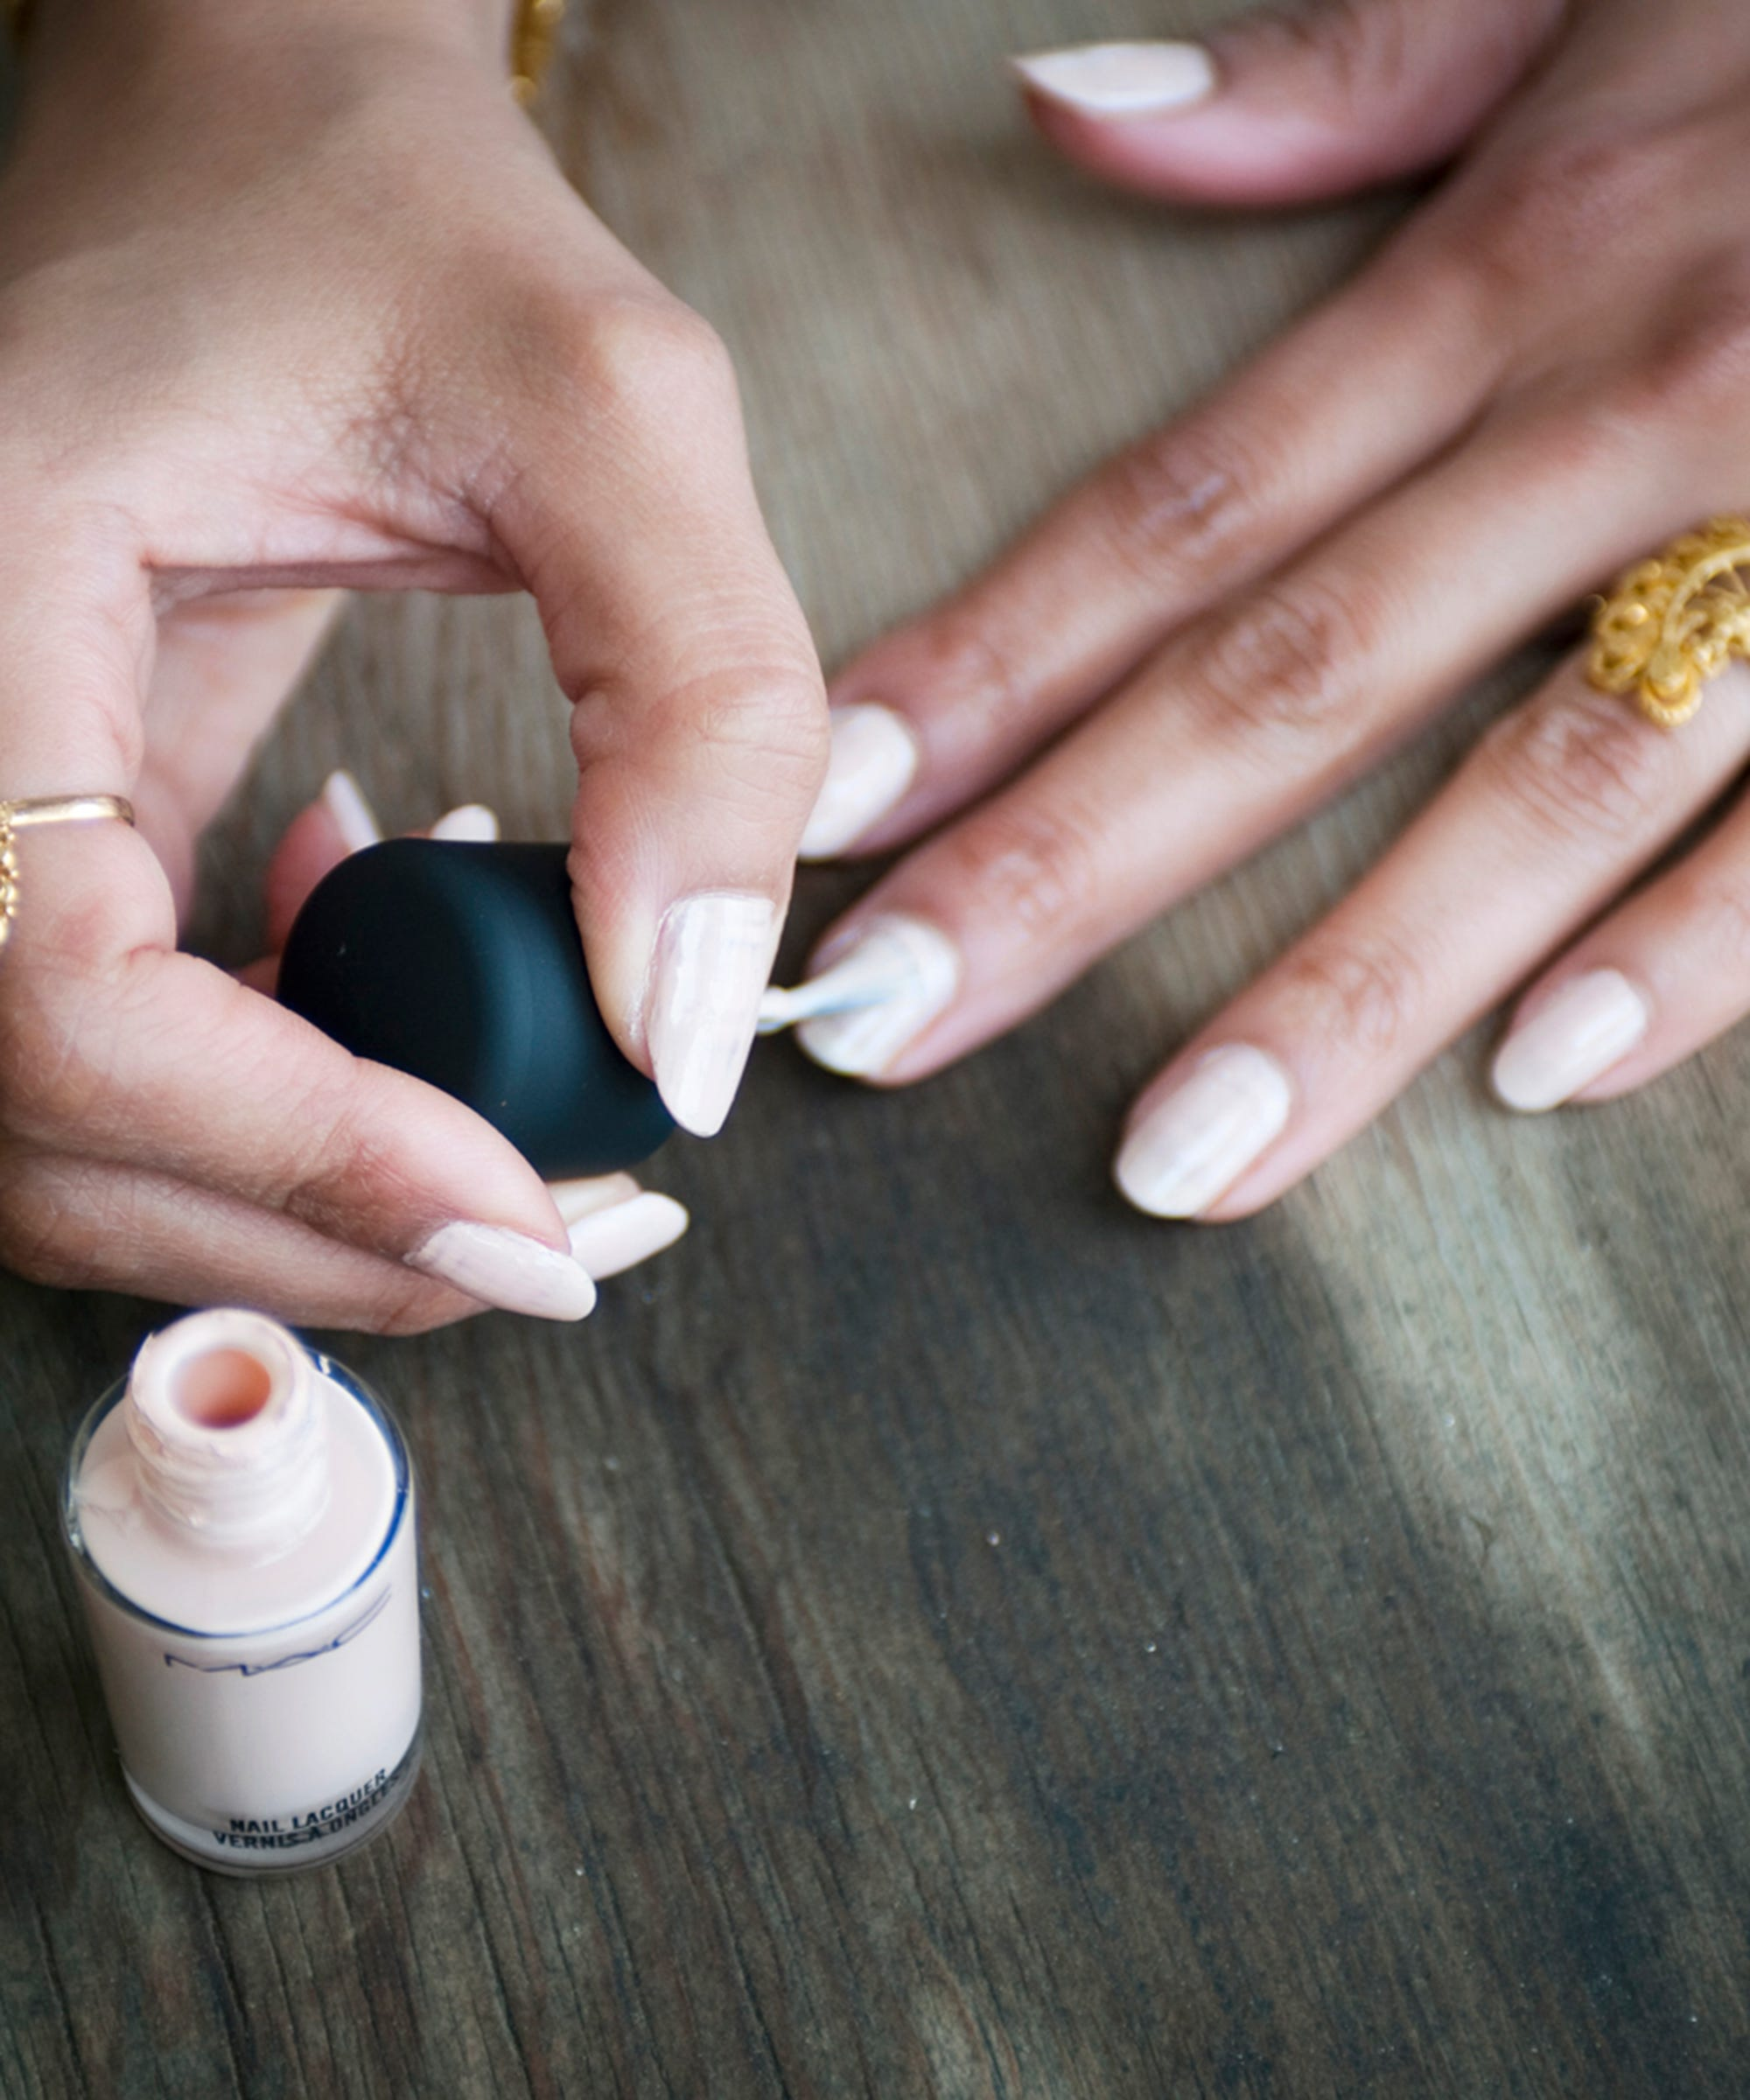 Nail Salons Warning Signs - How To Get A Good Manicure